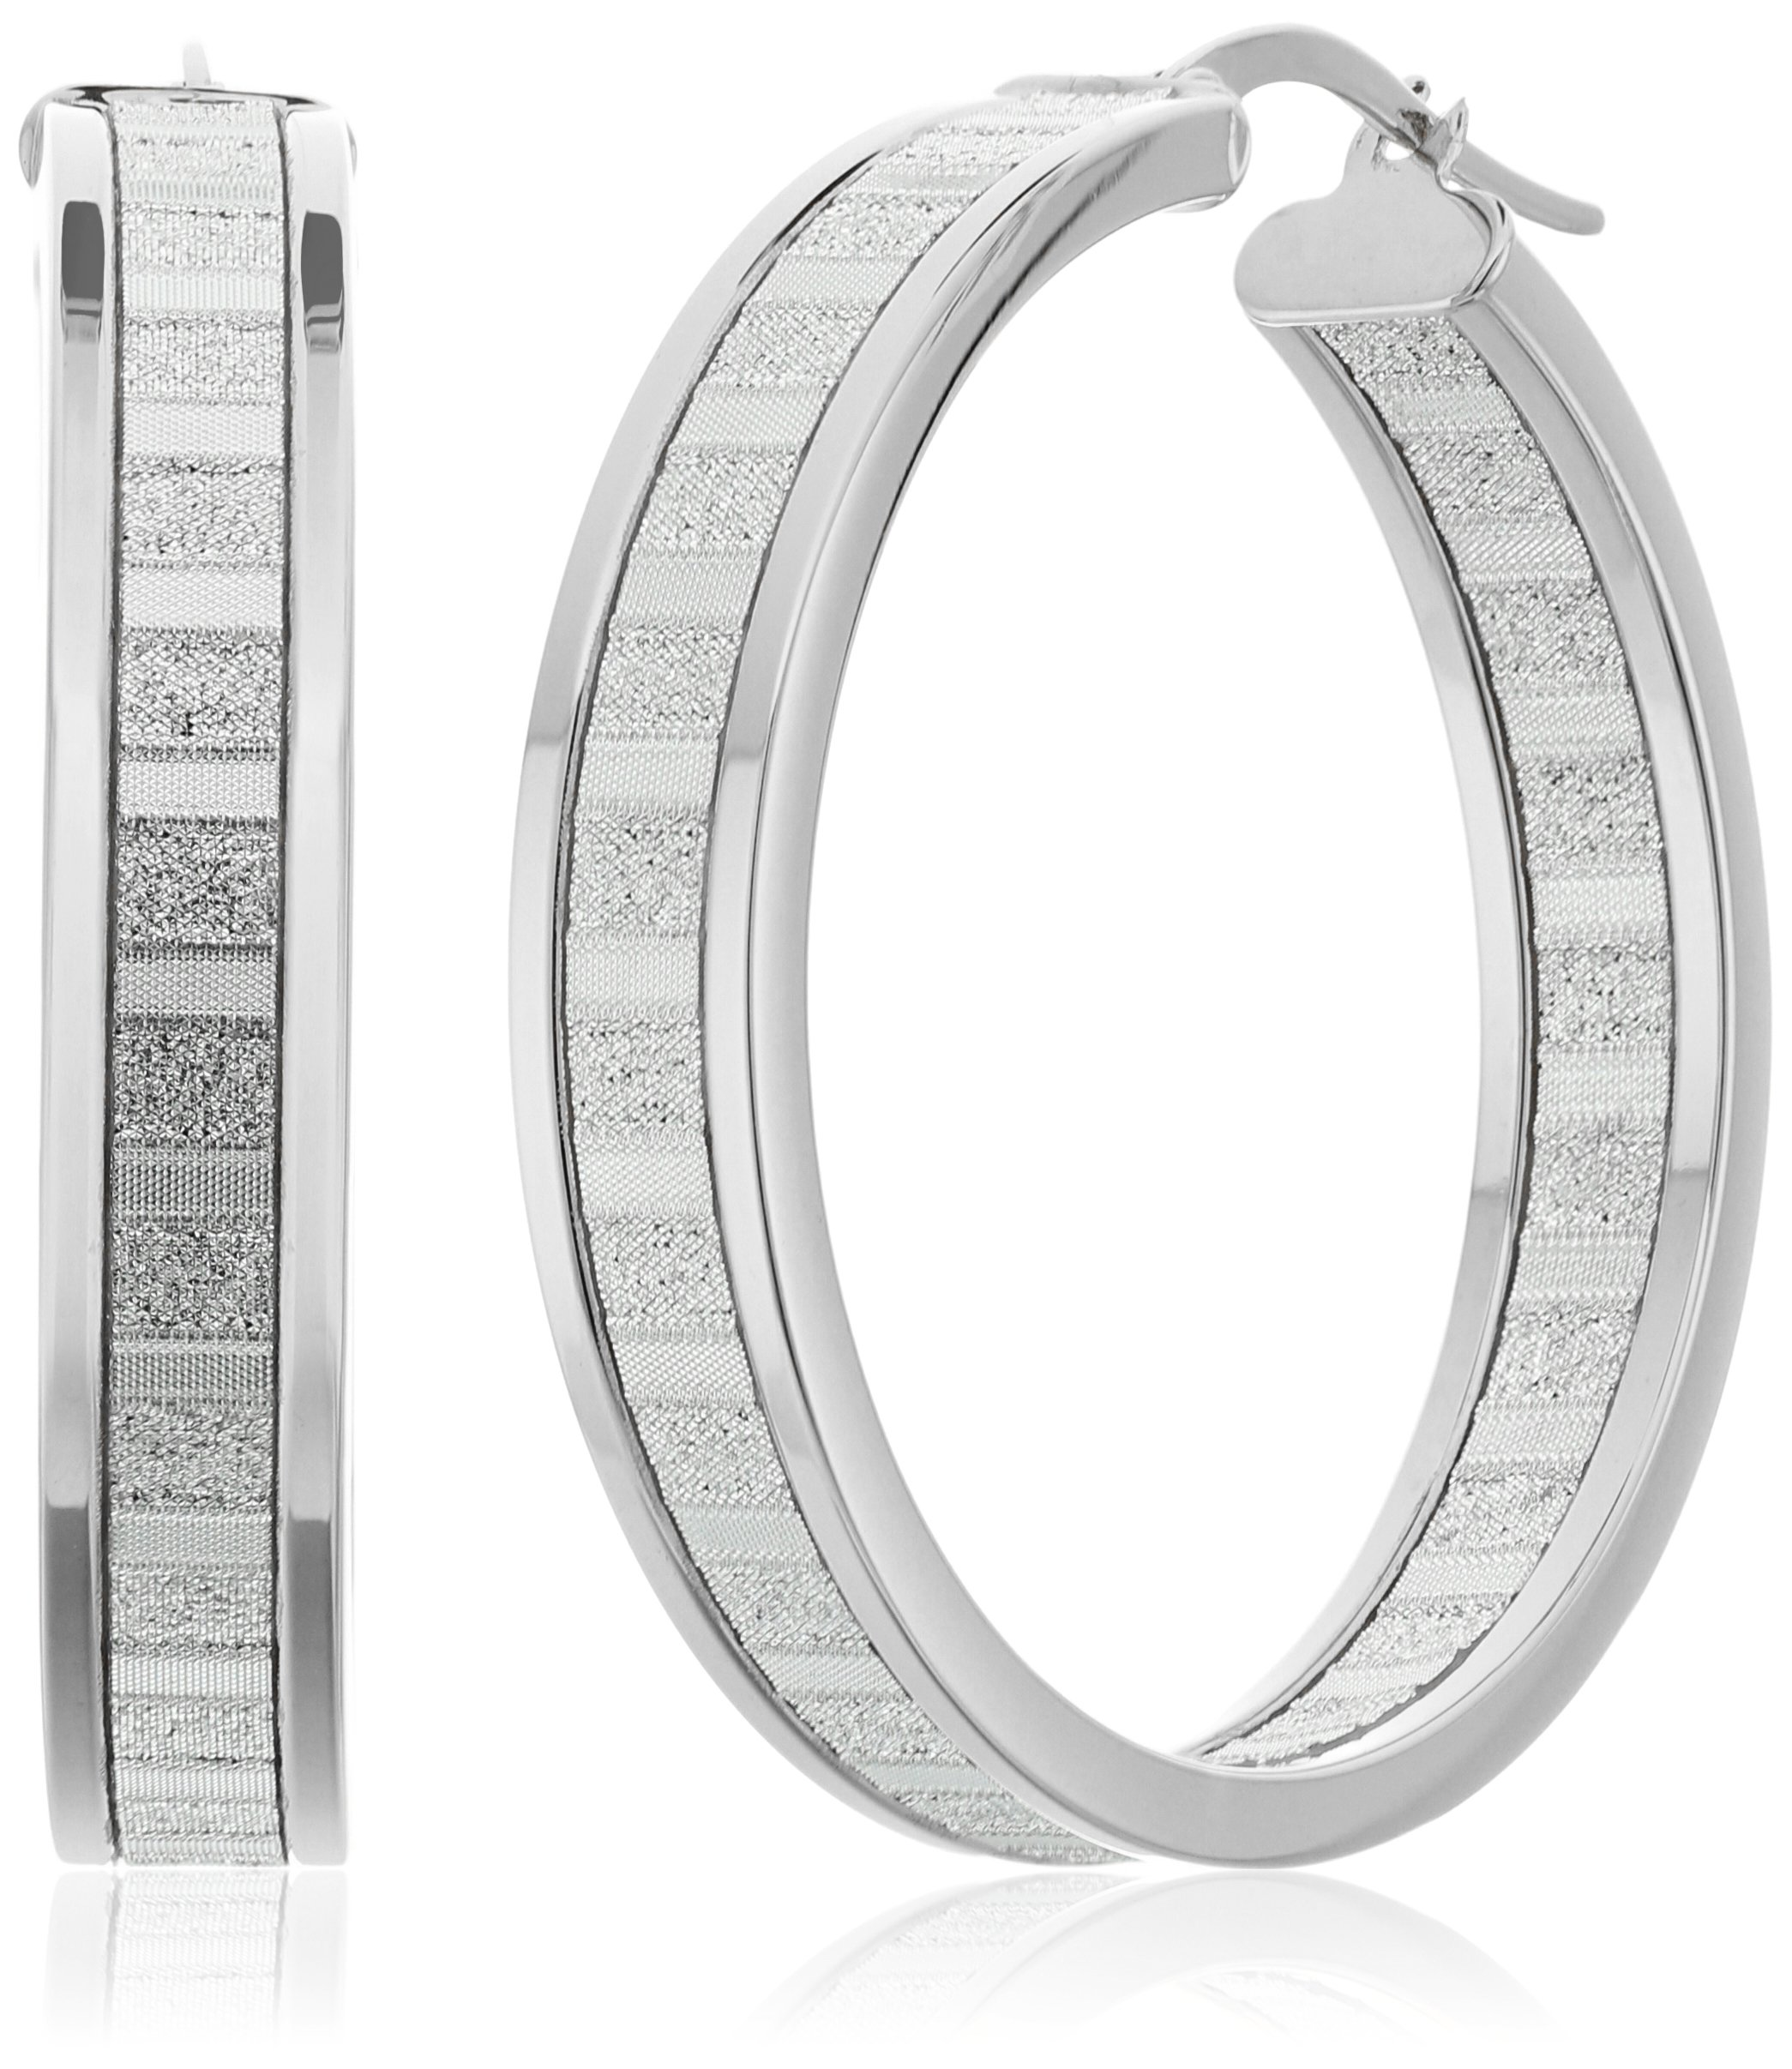 14k White Gold Italian 30 mm Wide Hoop Earrings with Baguette Style Glitter Hoop Earrings by Amazon Collection